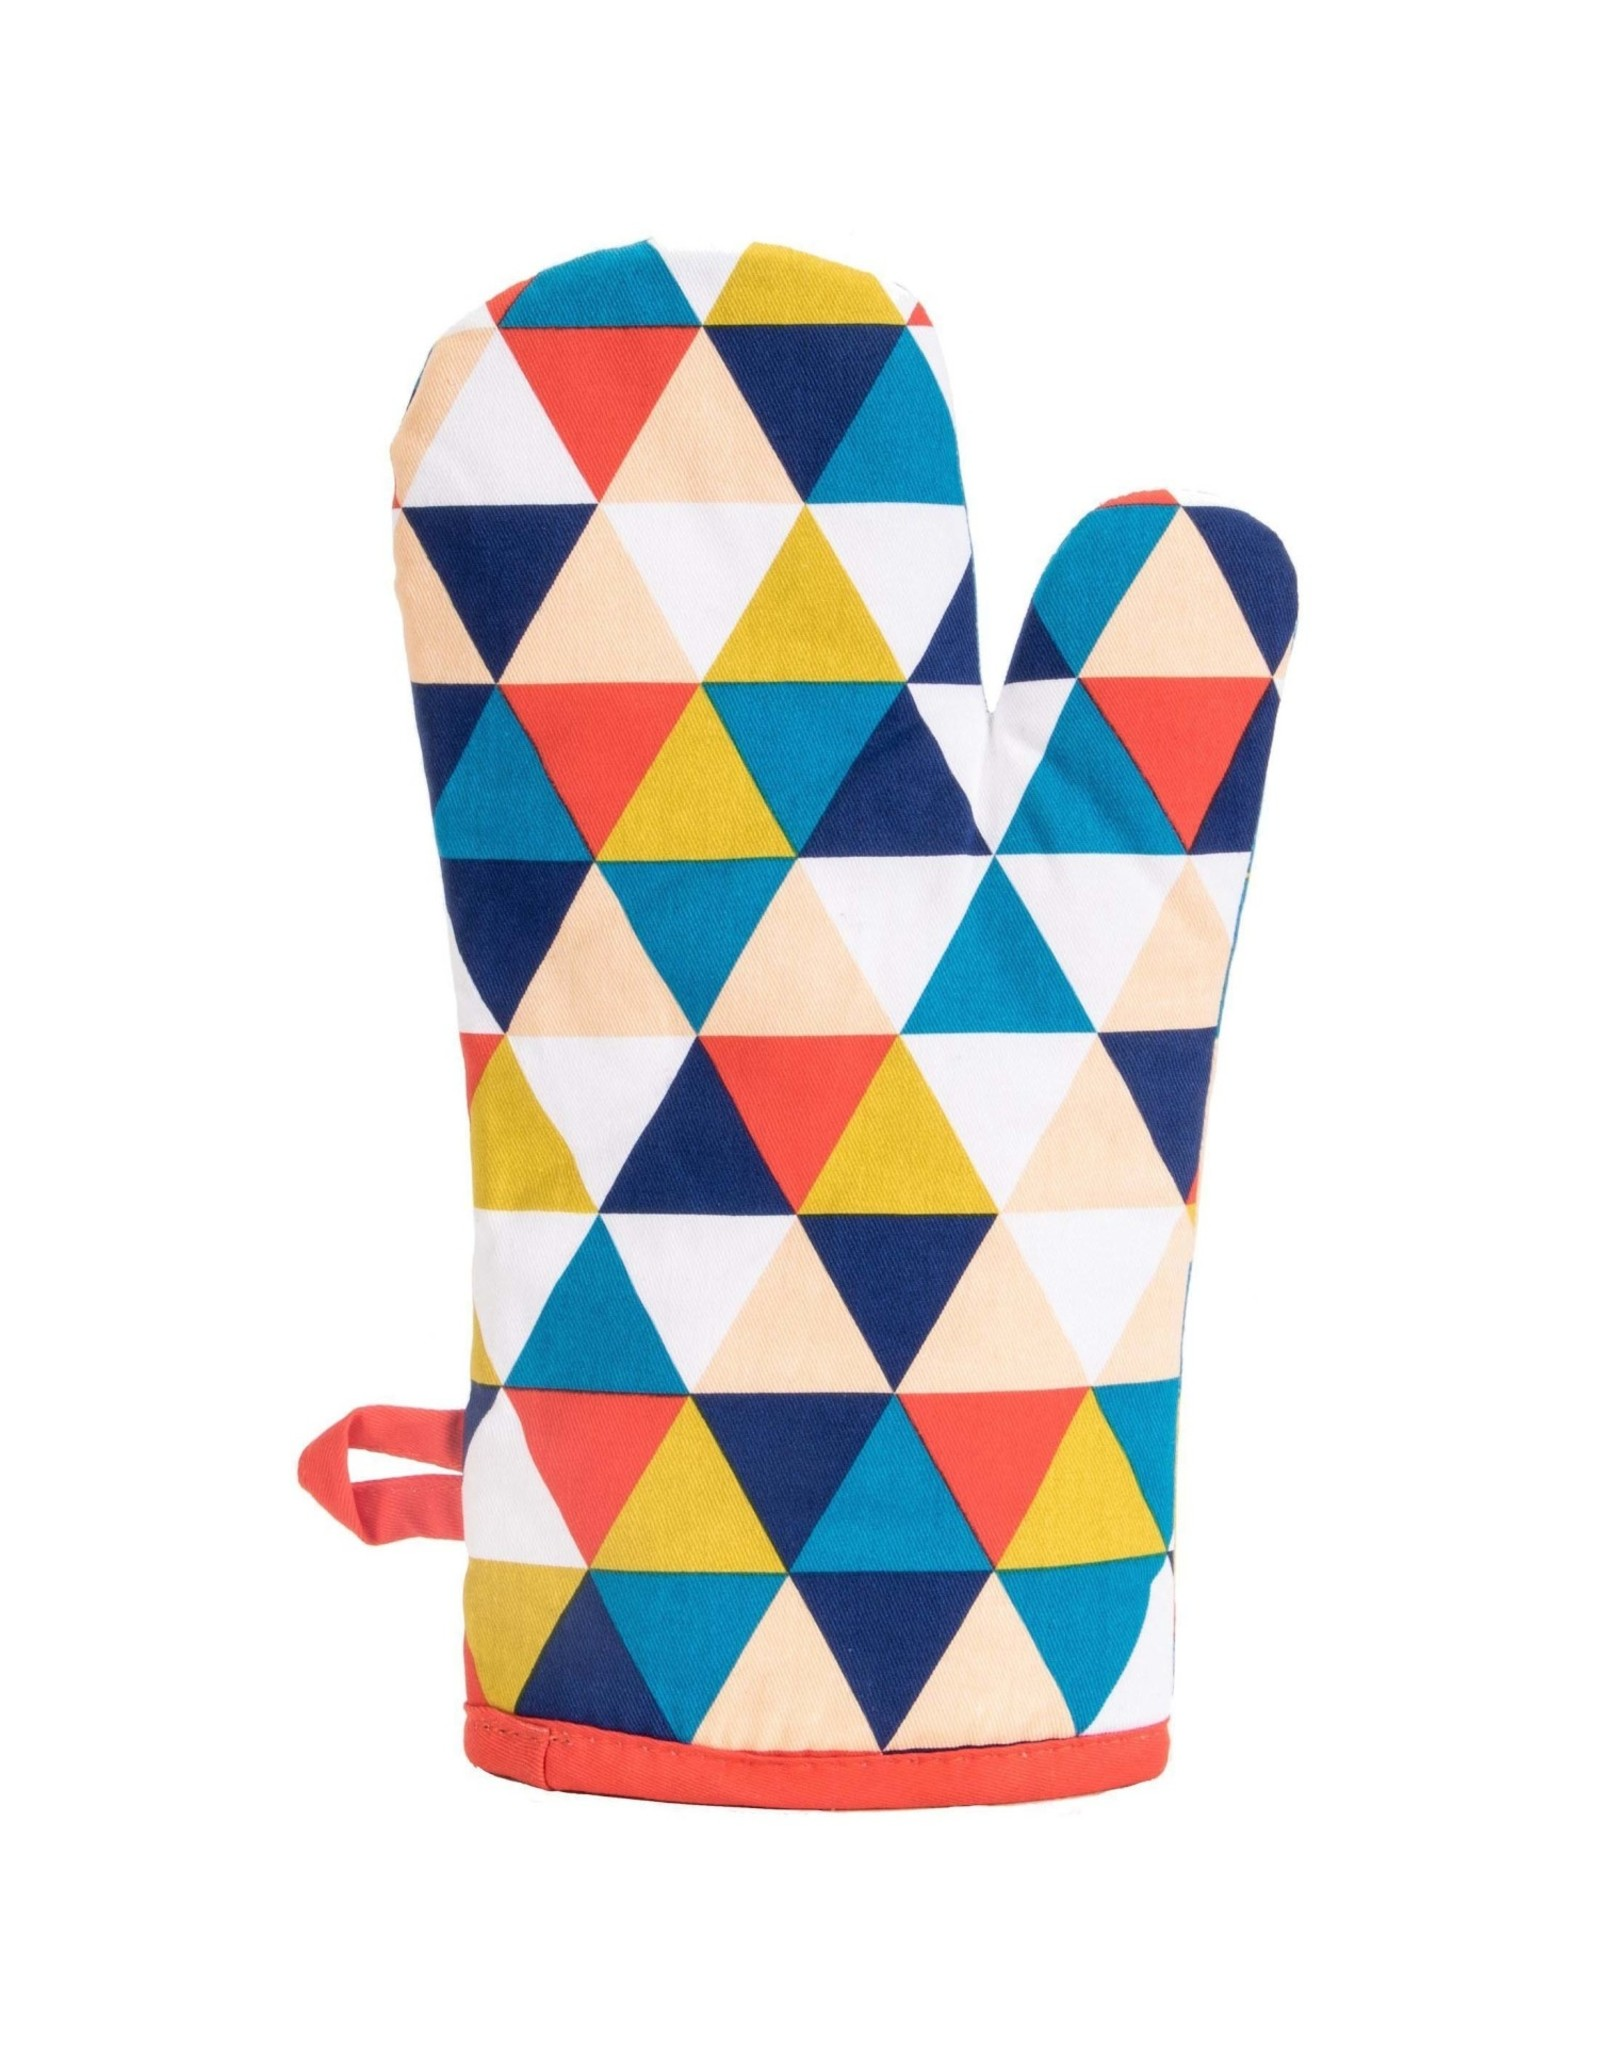 Blue Q Oven Mitt: Most Likely To Microwave